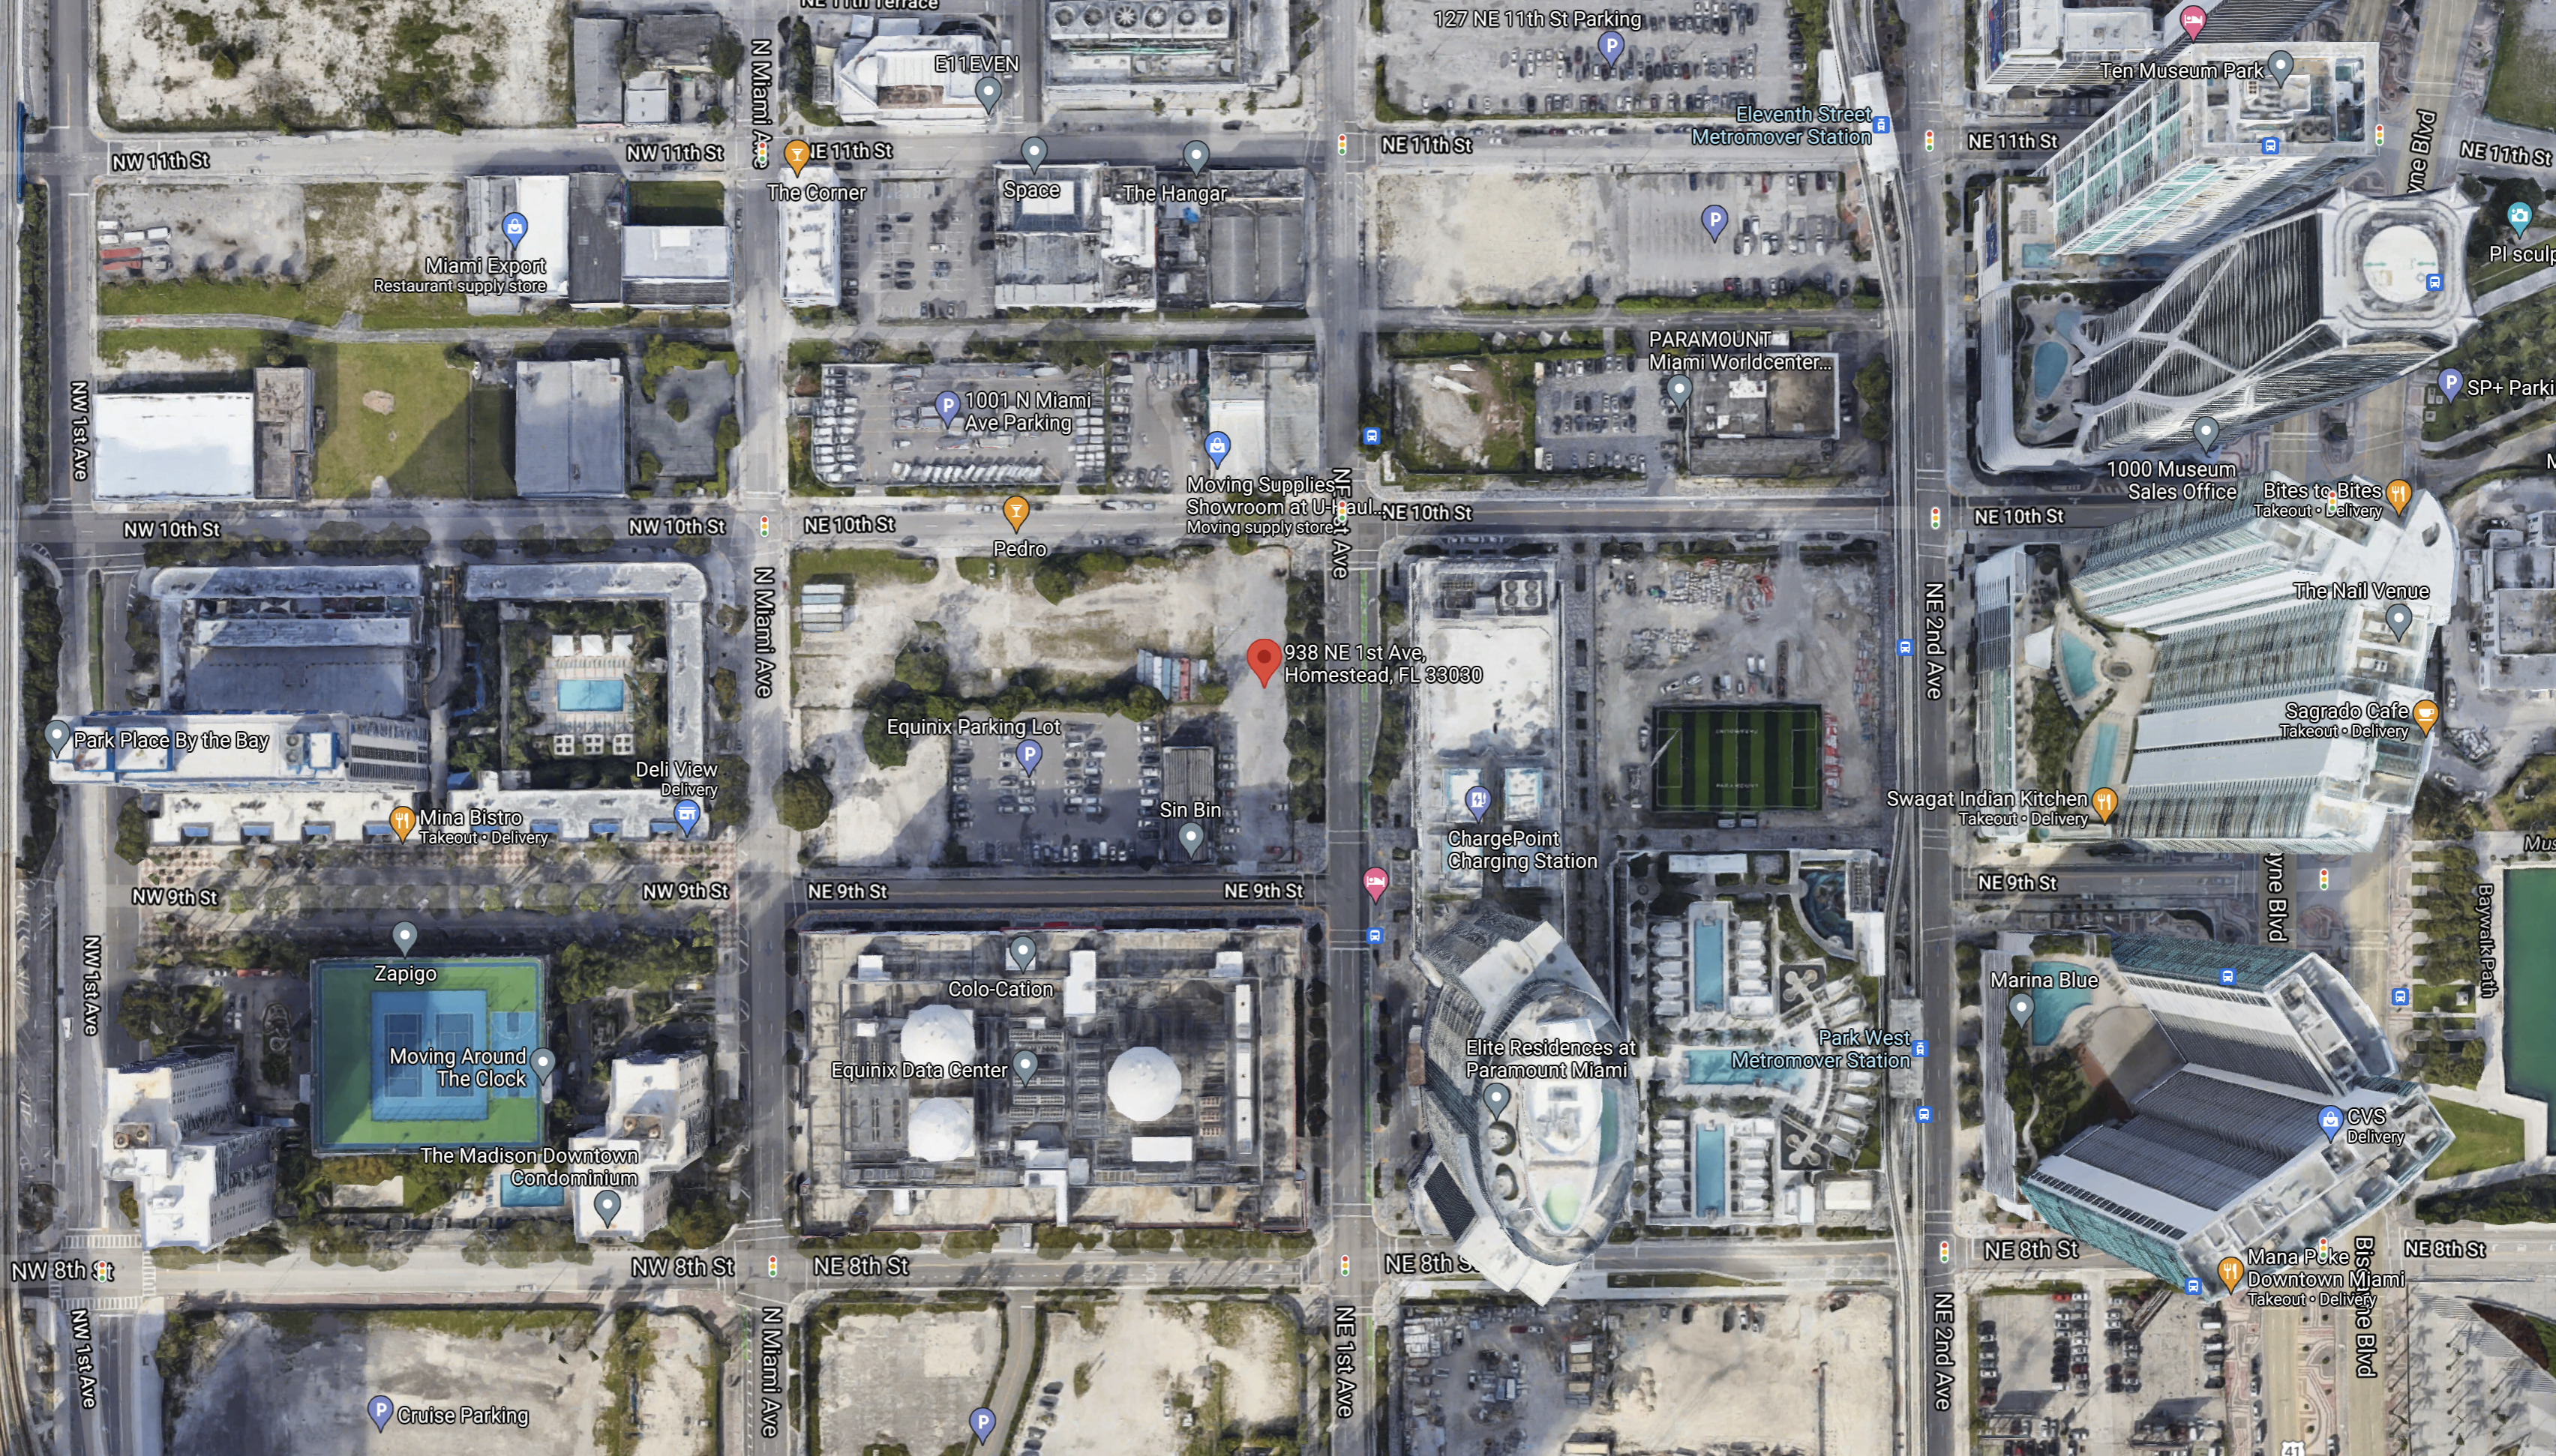 Aerial View of Subject Property. Courtesy of Google Maps.